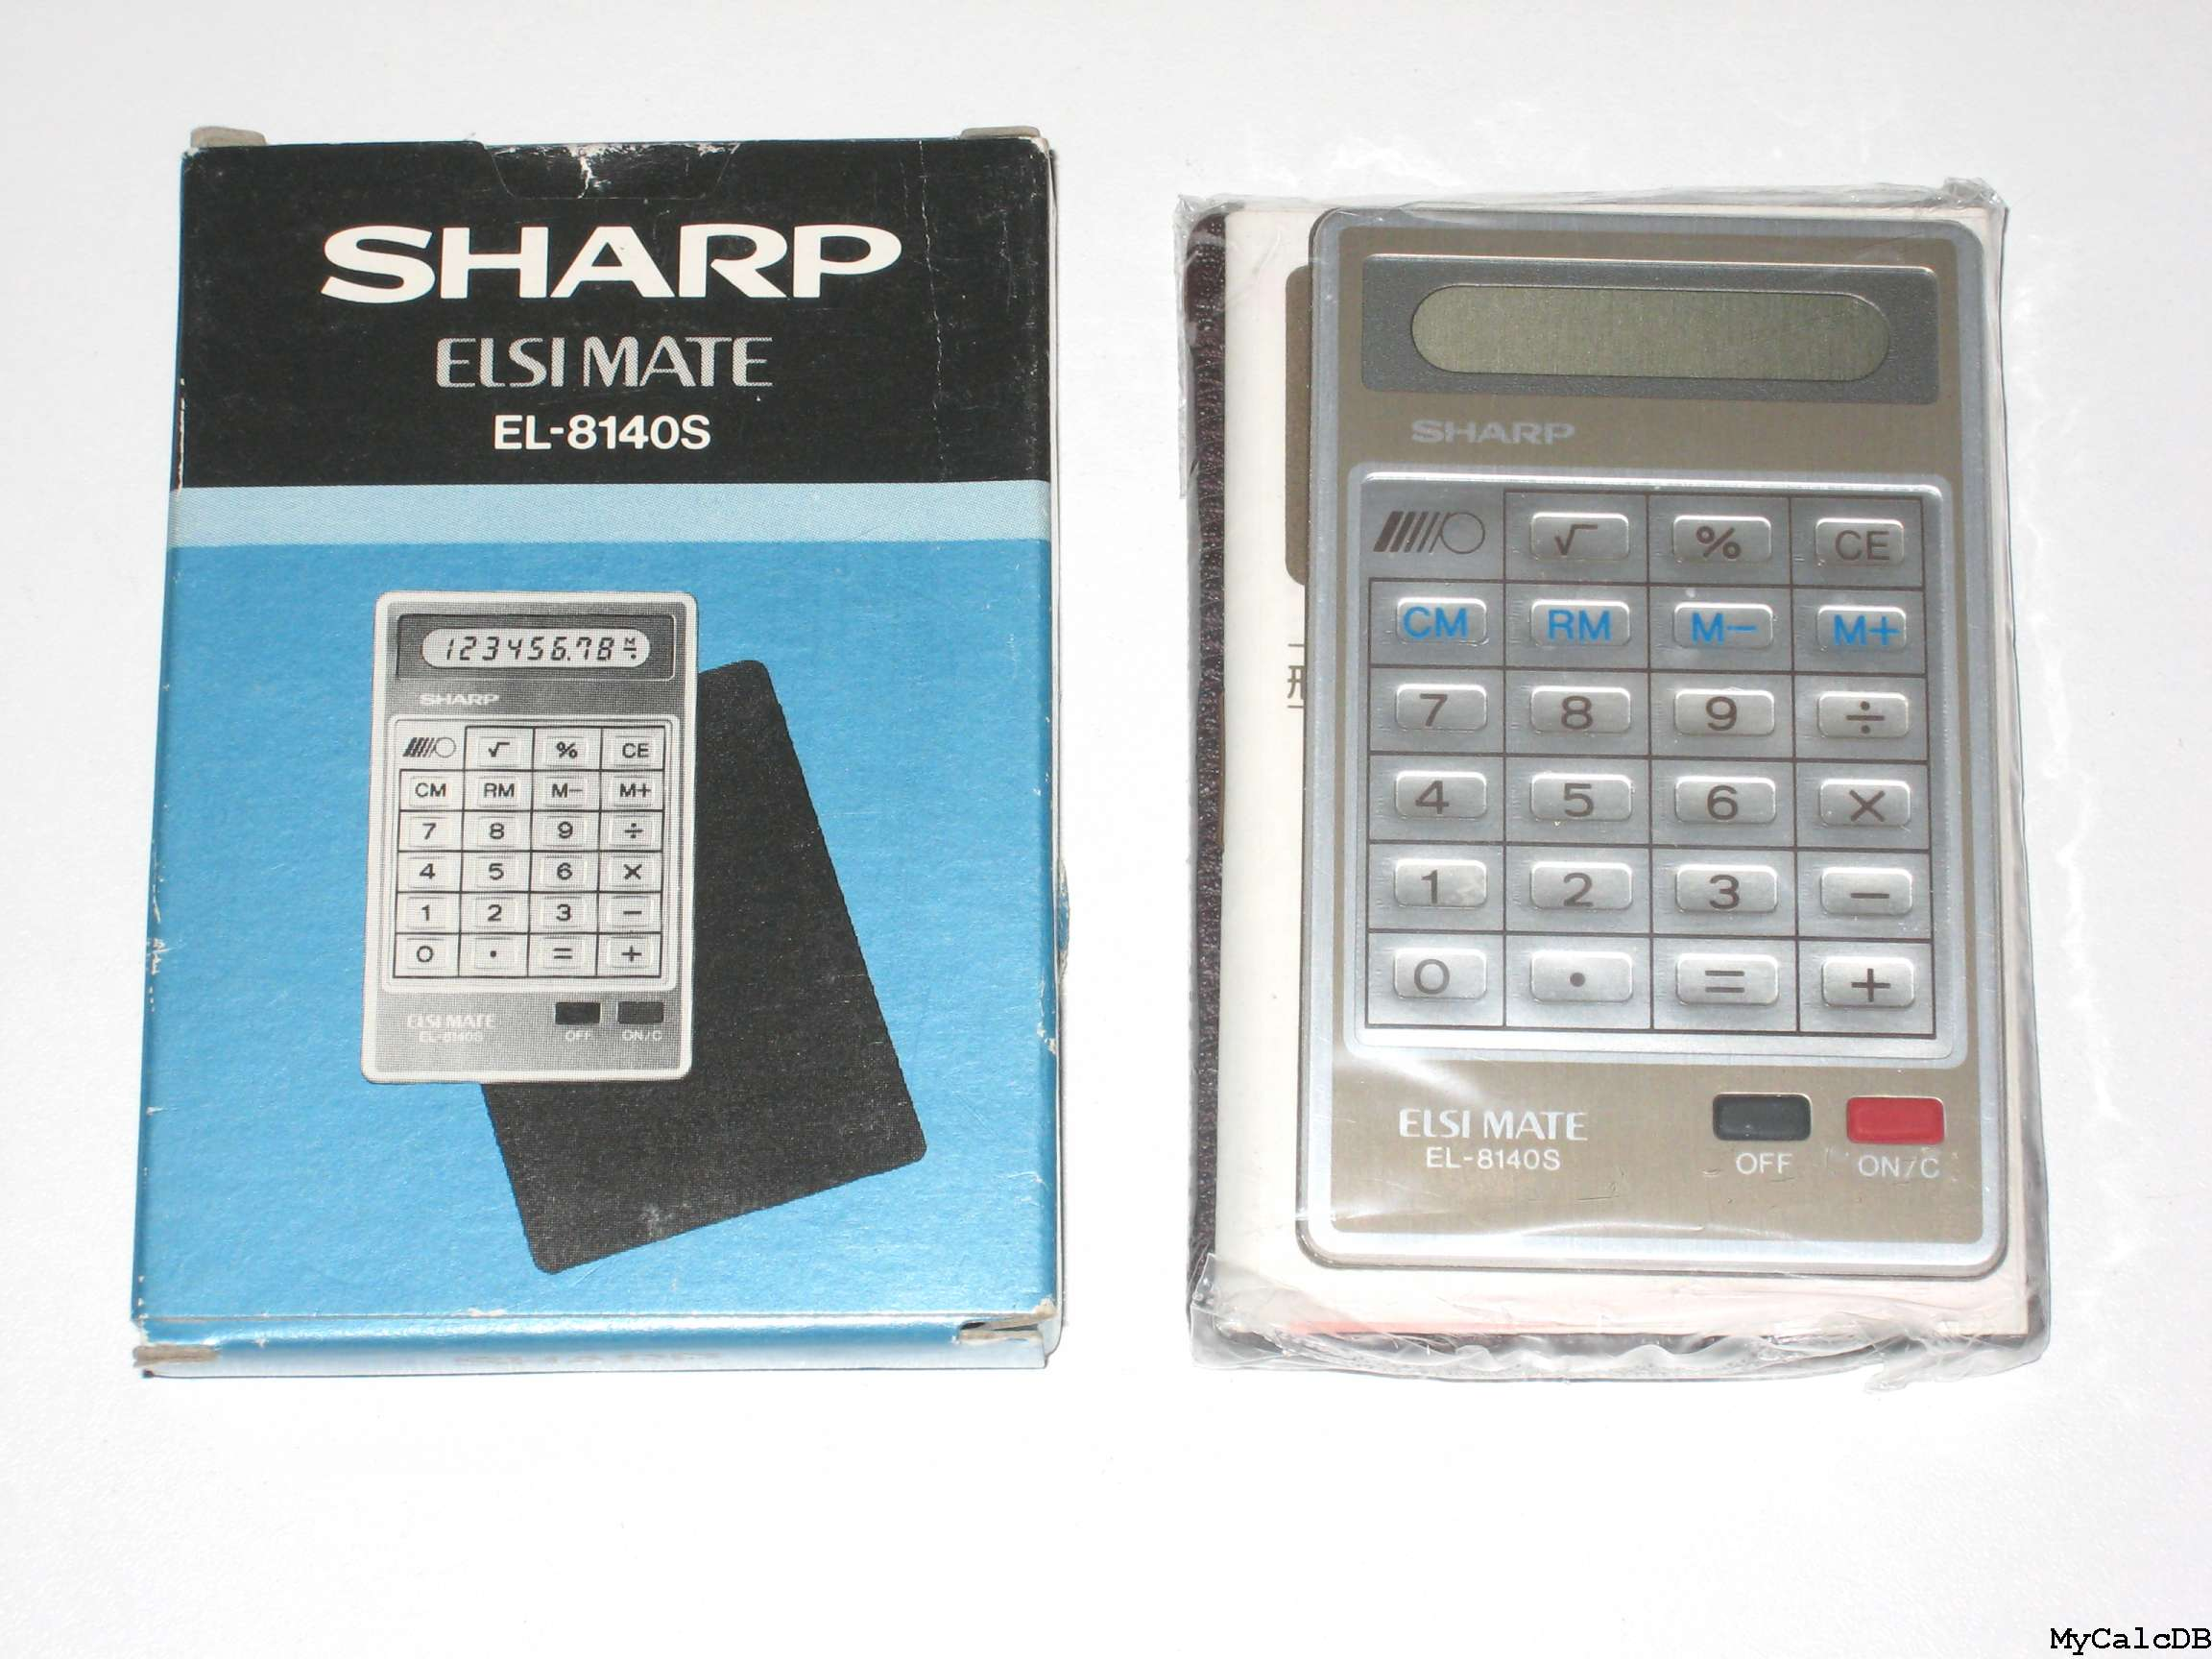 Sharp EL-8140S